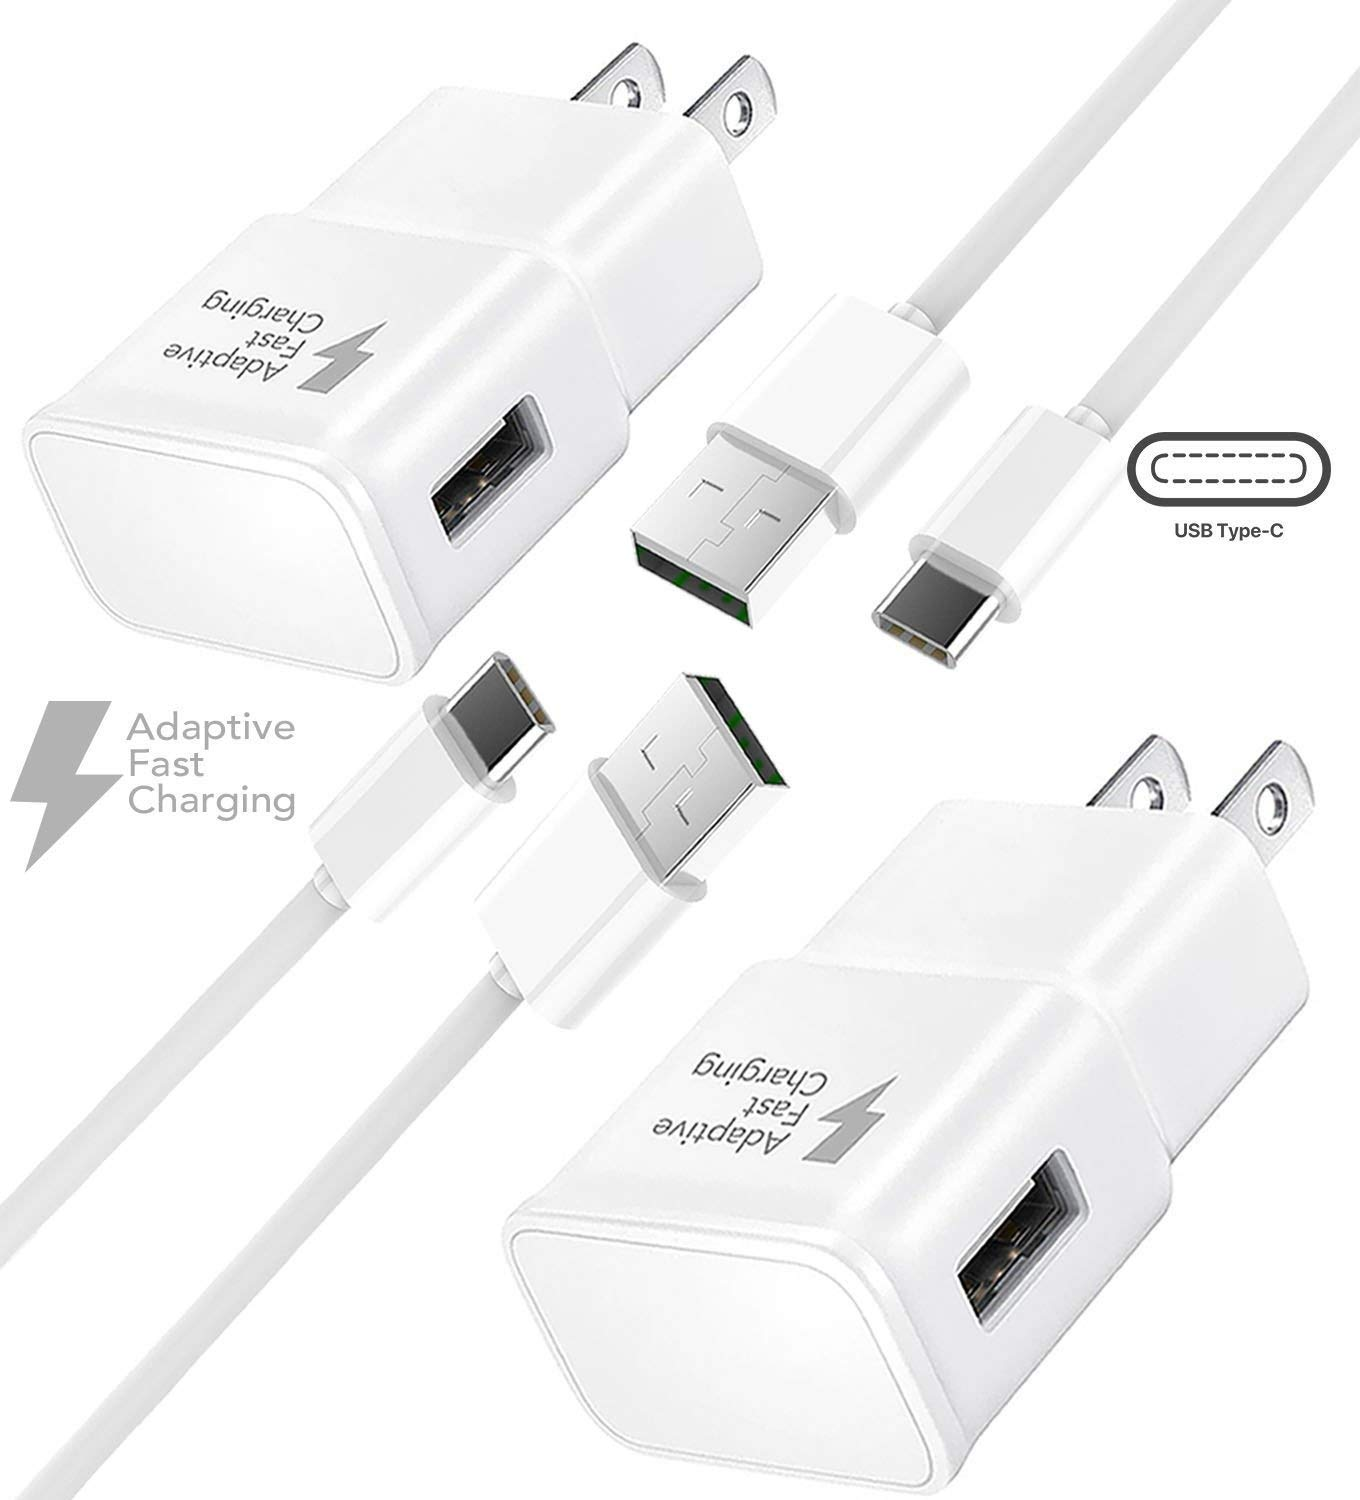 Samsung Galaxy S10. S10e, S10 Plus, Note 9 Fast Wall Charger Set, (2X Wall Chargers + 2X Type-C Cables) by Boxgear Galaxy S9, Galaxy S8, Note 8, S8 Plus, Compatible with Other Samsung Products